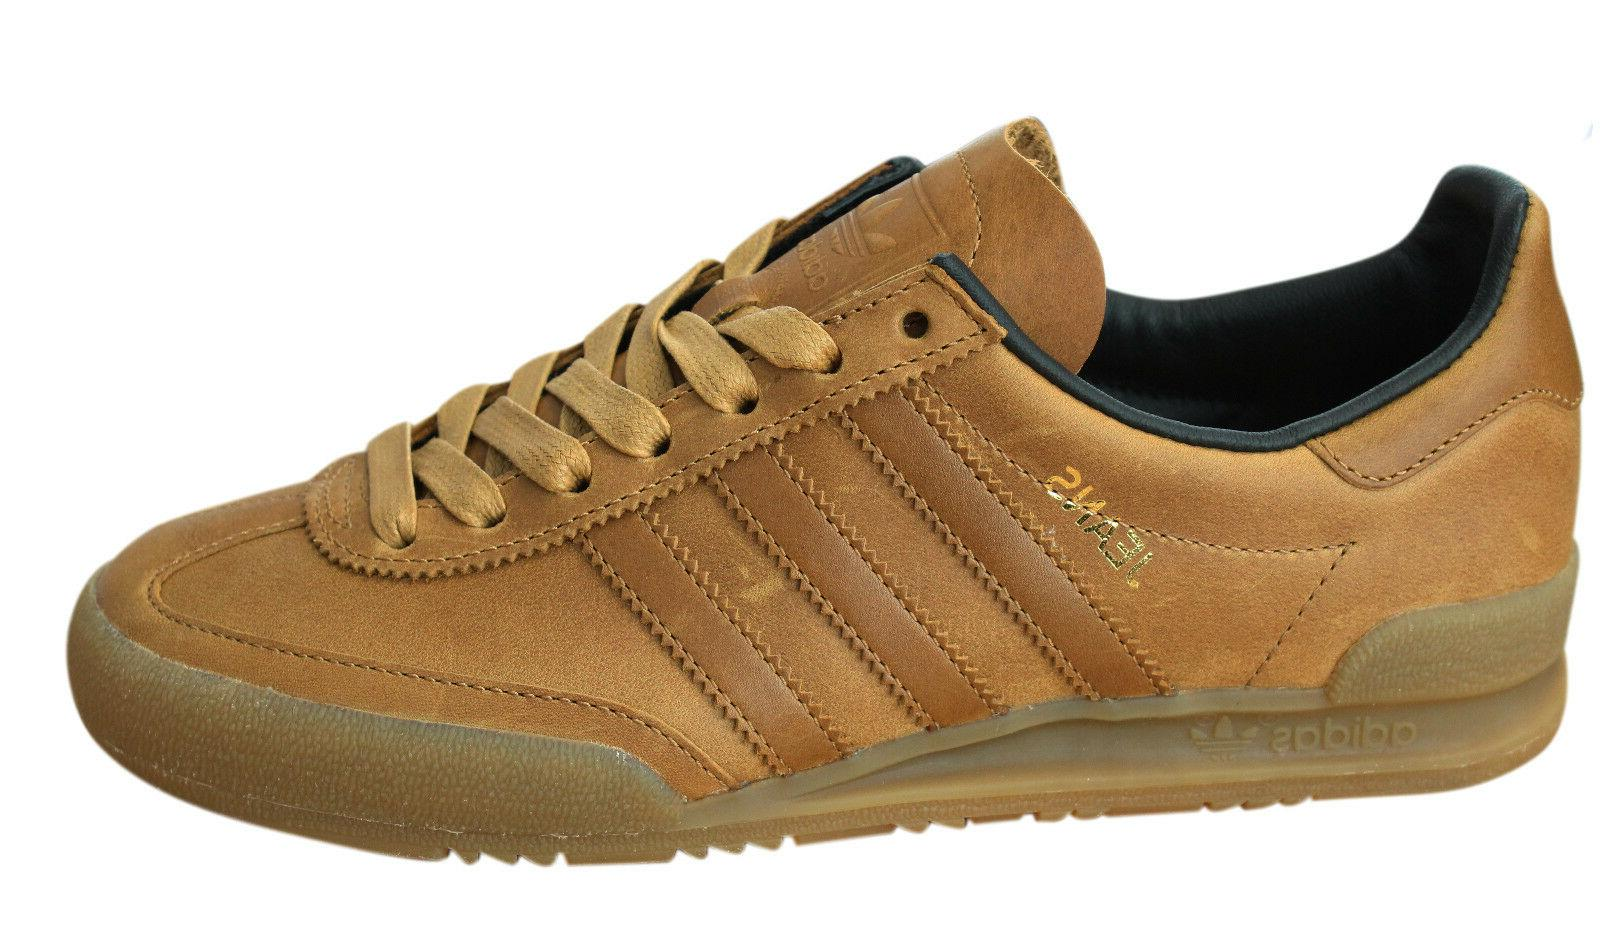 adidas jeans mkii